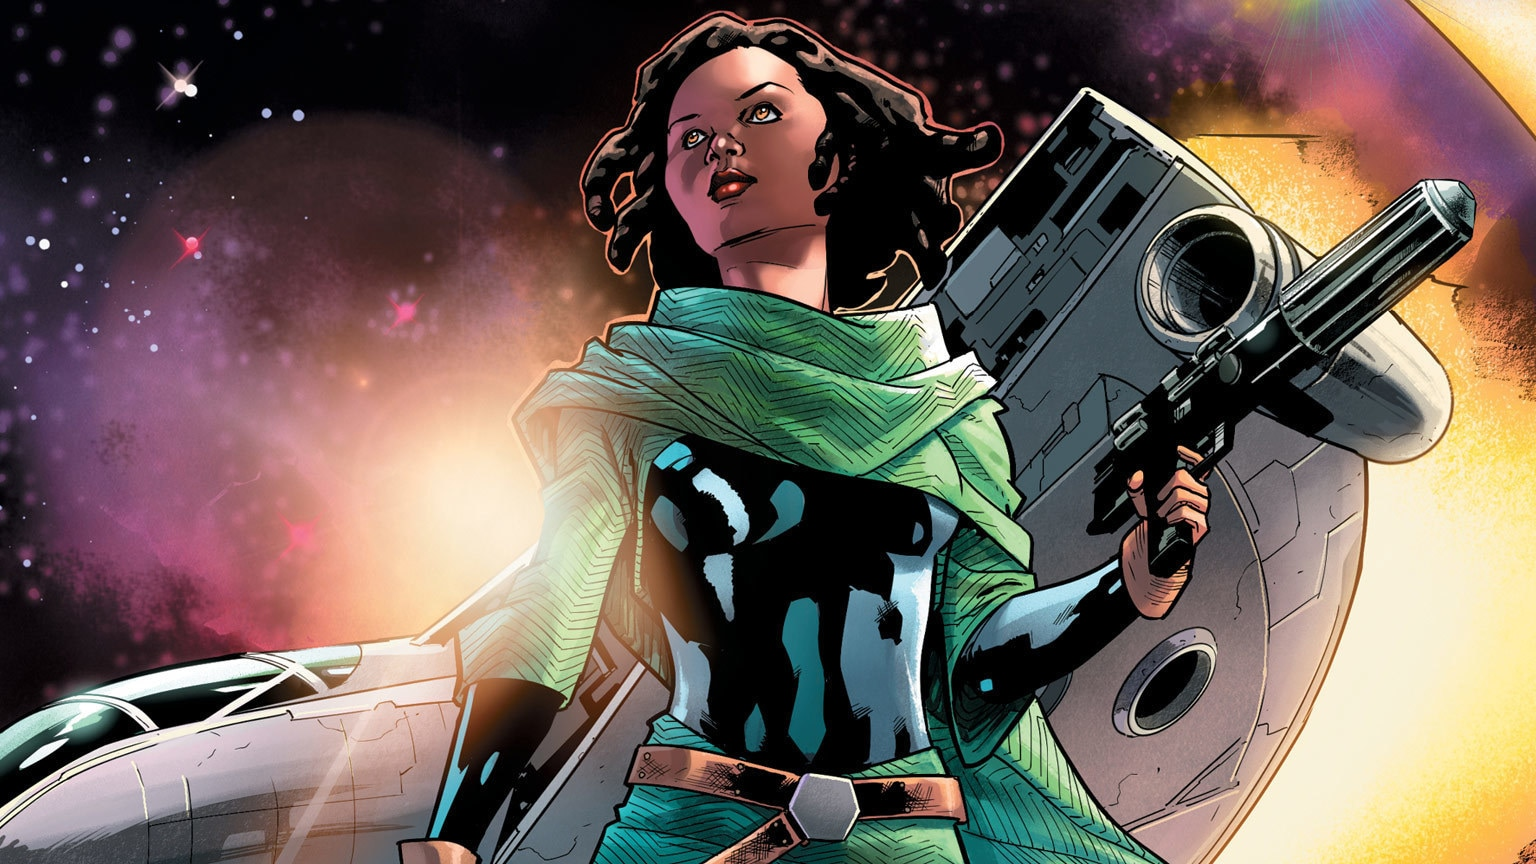 Marvel Celebrates Sana Starros and More in Star Wars Pride Month Comics Covers this June